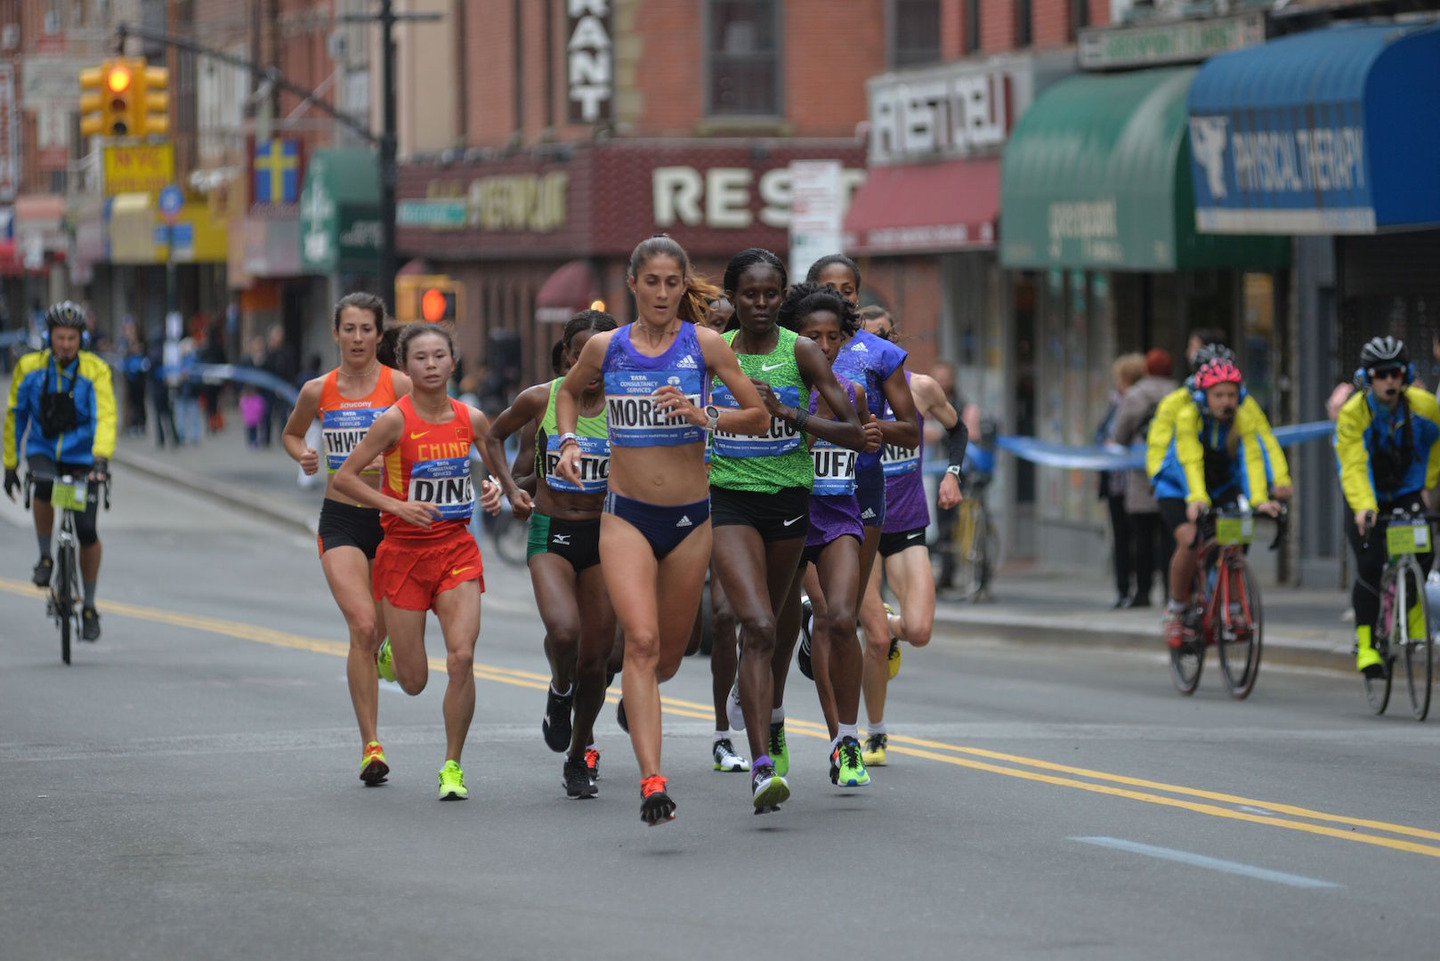 New York City Marathon, America - 01 Nov 2015